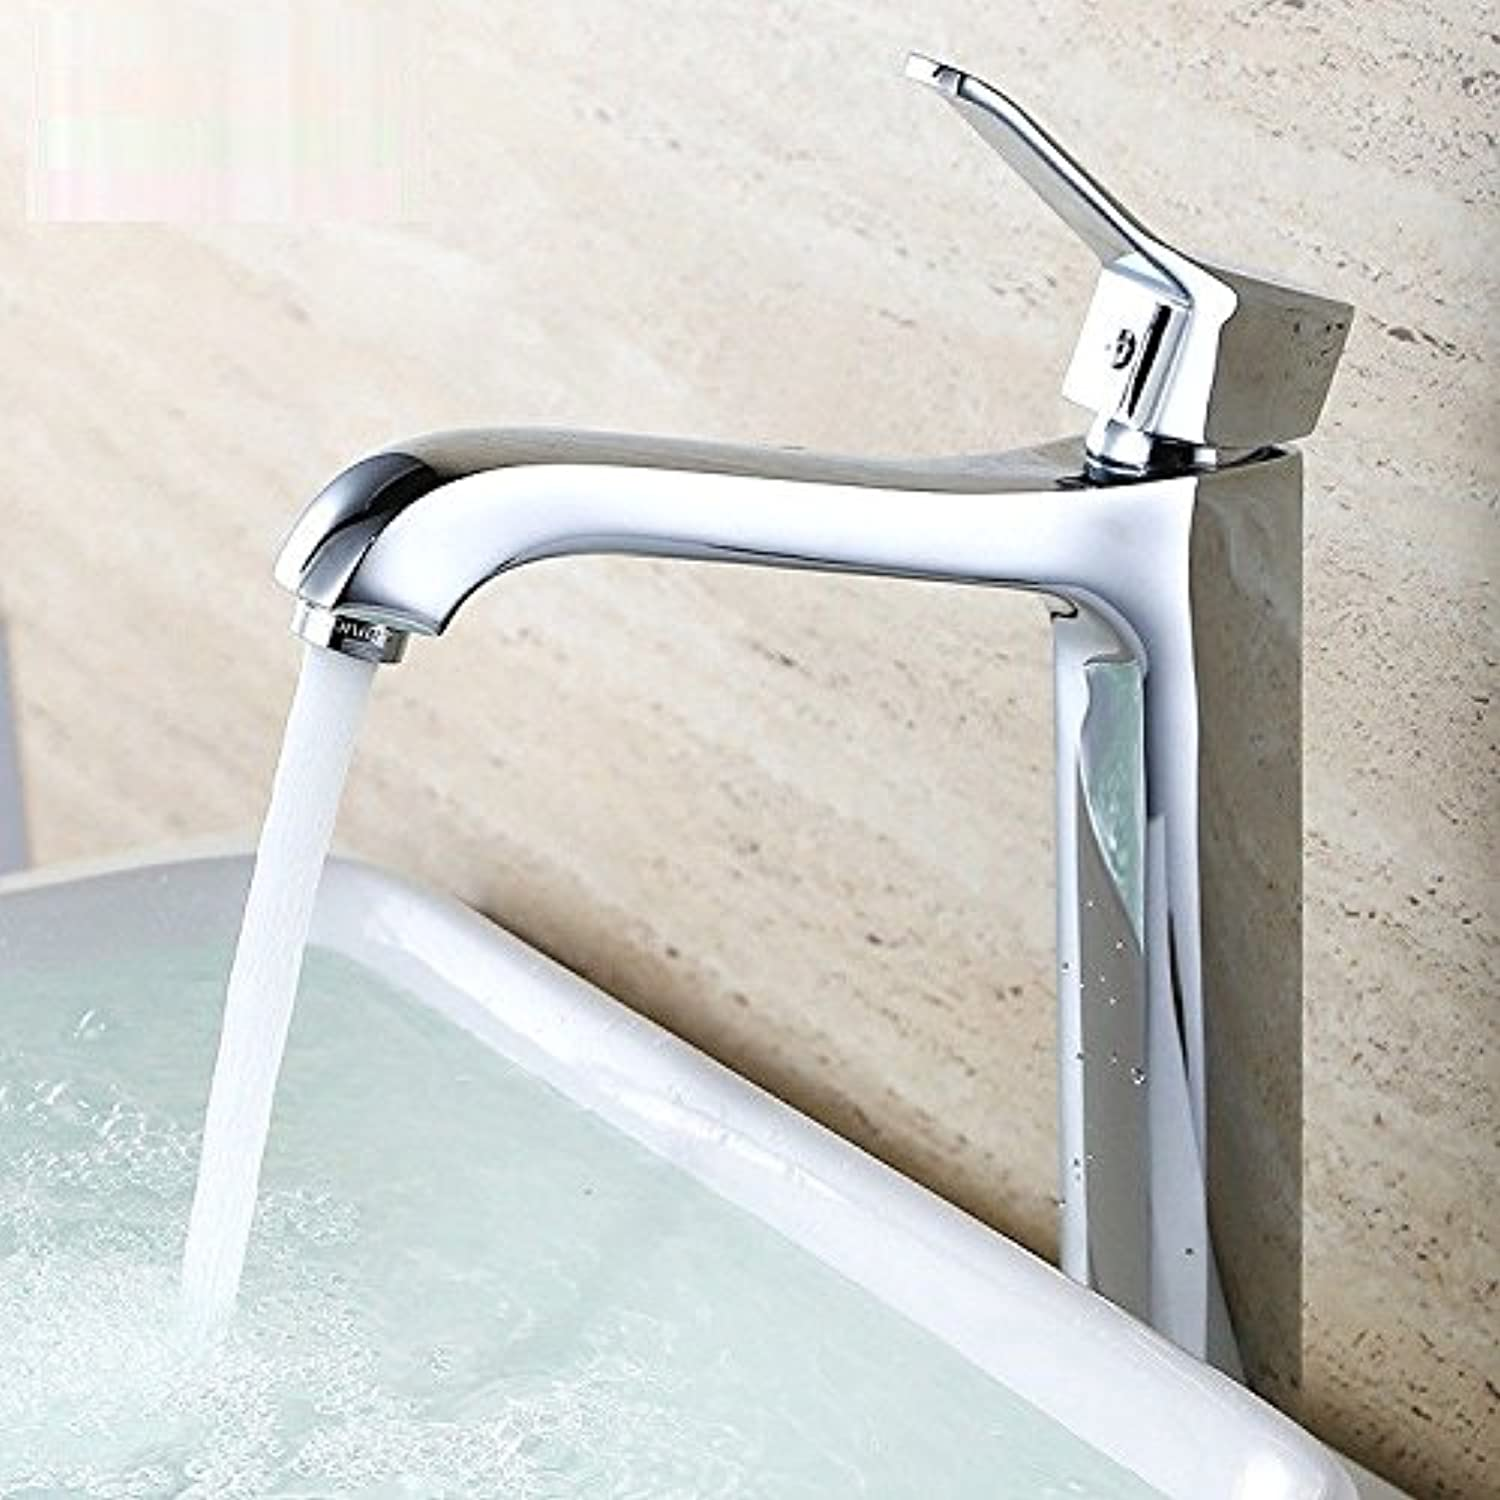 Commercial Single Lever Pull Down Kitchen Sink Faucet Brass Constructed Polished Single Hole Faucet Basin Single Unit Kitchen Hot and Cold Basin Mixed Water Hot and Cold Water Faucet Set